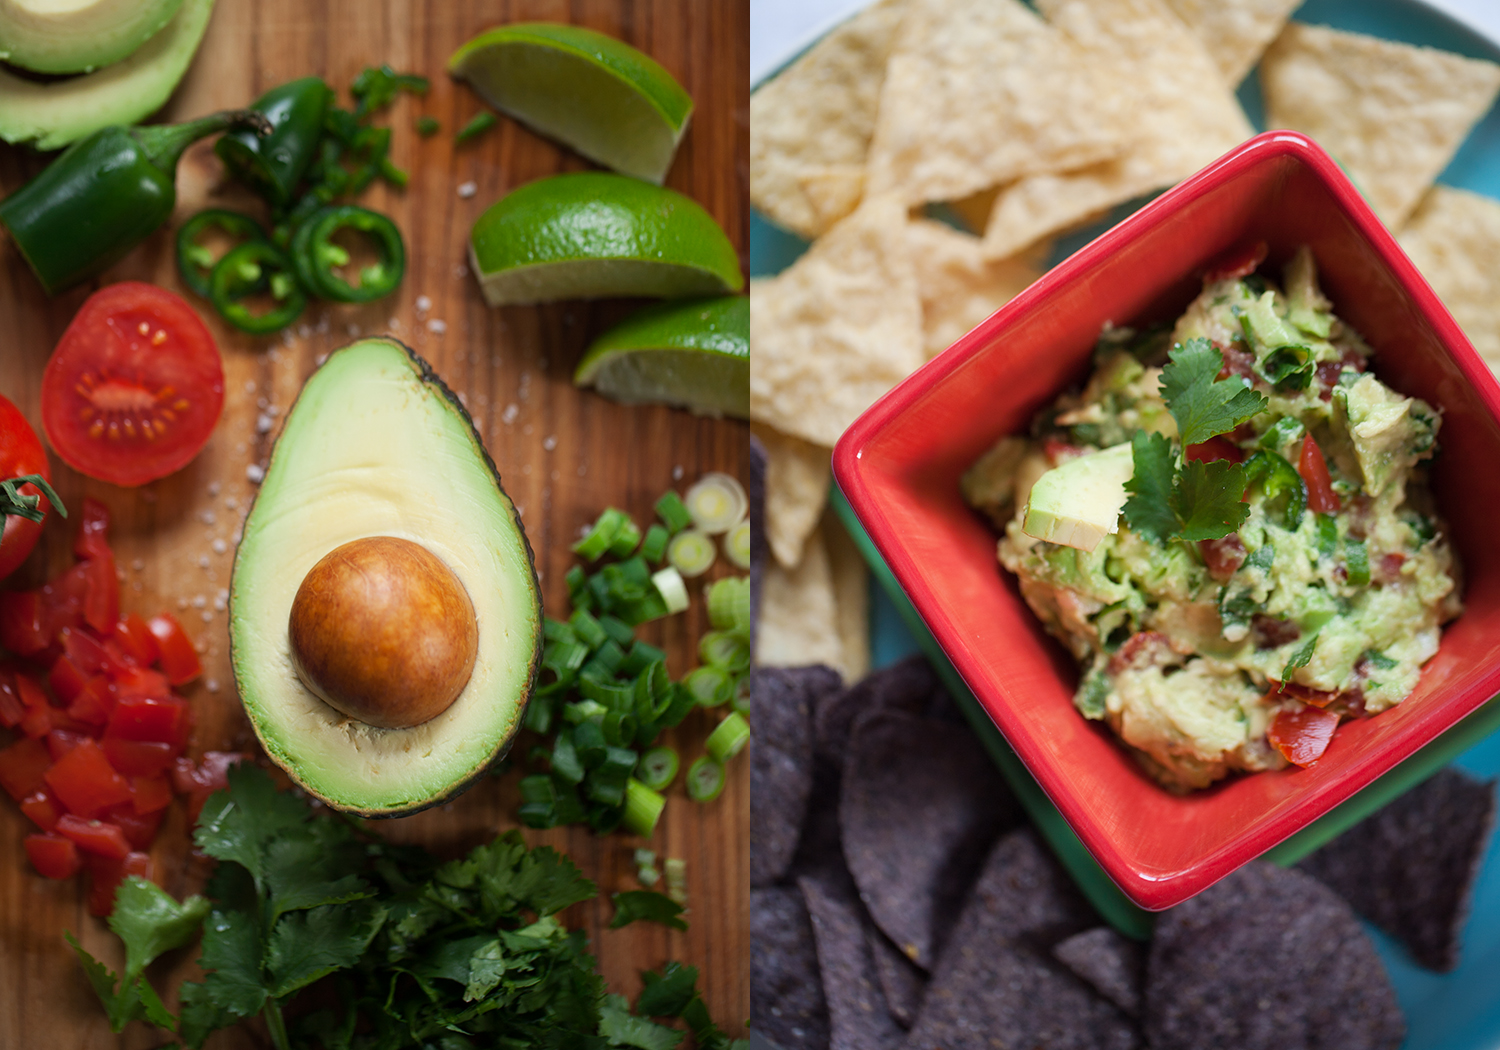 Making fresh guacamole, Kitchen Table series by Dena Robles